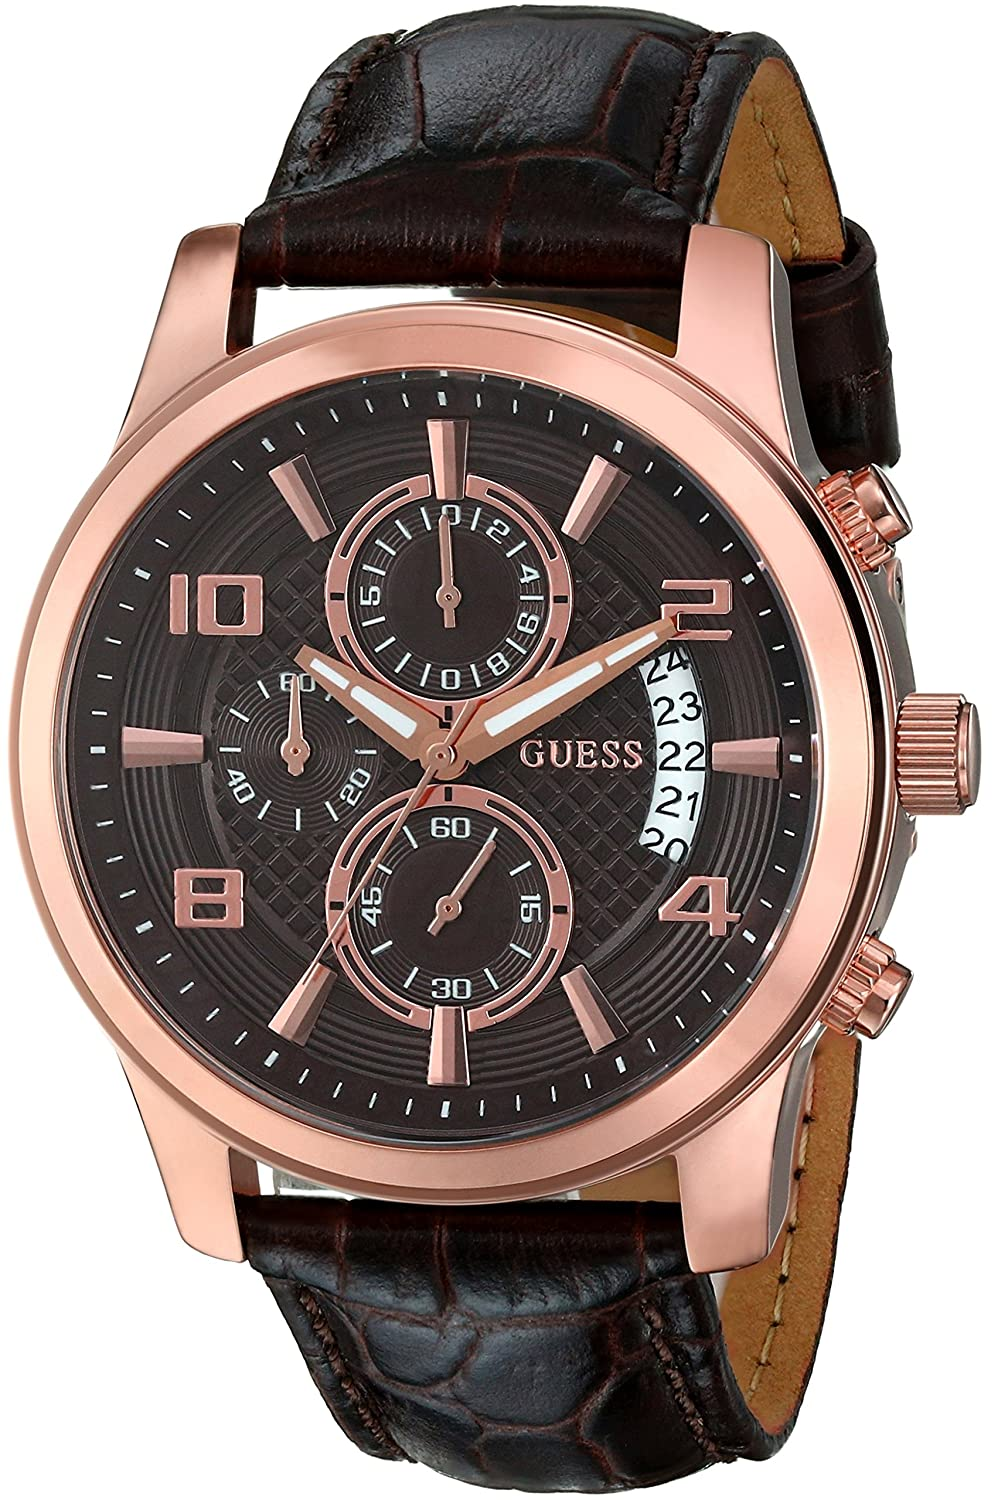 guess men s u0076g4 brown chronograph watch brown dial and guess men s u0076g4 brown chronograph watch brown dial and rose gold tone case amazon co uk watches